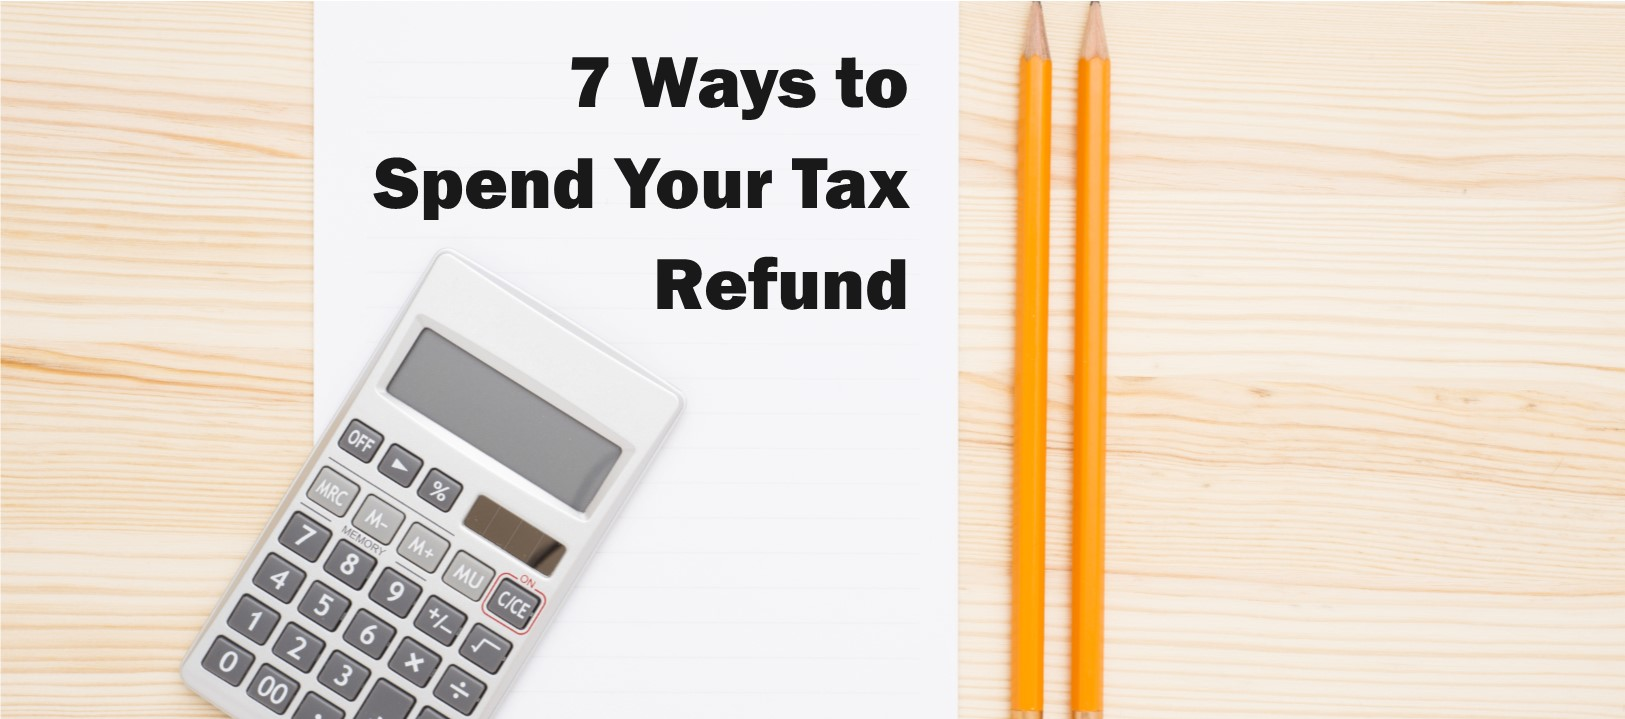 7 Things to Do With Your Tax Refund